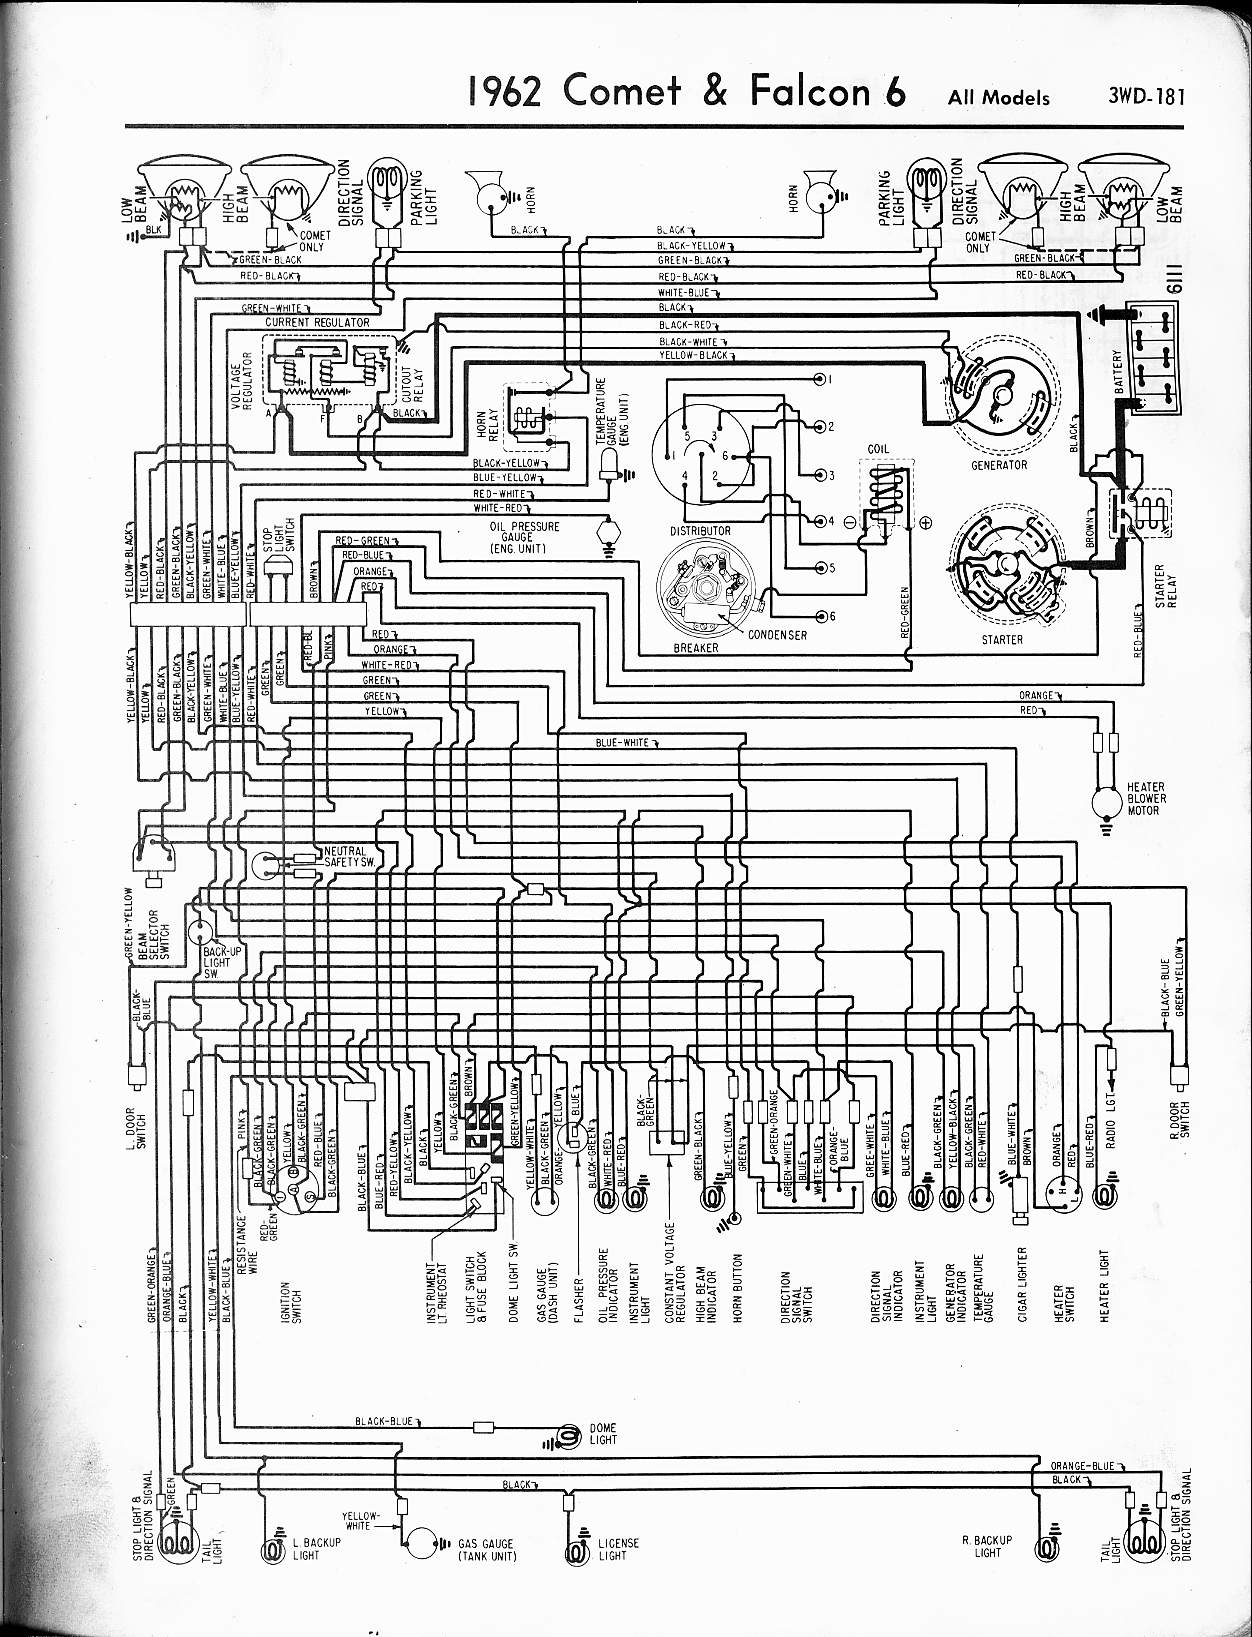 1968 ford f100 wiring diagram pdf schematic diagram 1966 Ford F100 1968 ford f100 wiring diagram pdf wiring diagram 1968 ford f100 distributor 1968 f100 wiring harness